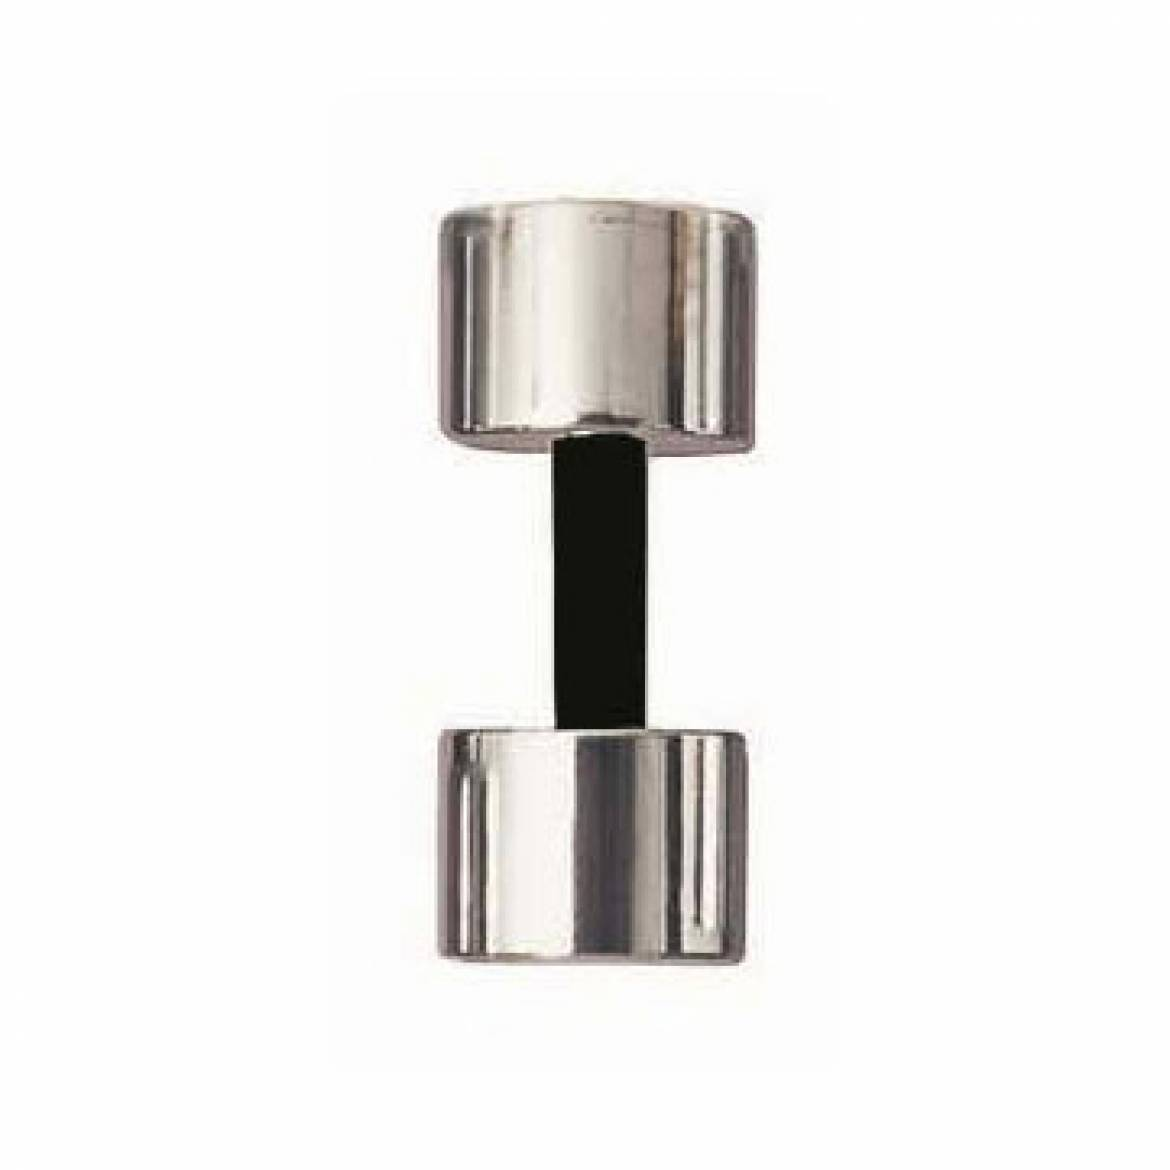 Foam Grip Chrome Plated Dumbbells